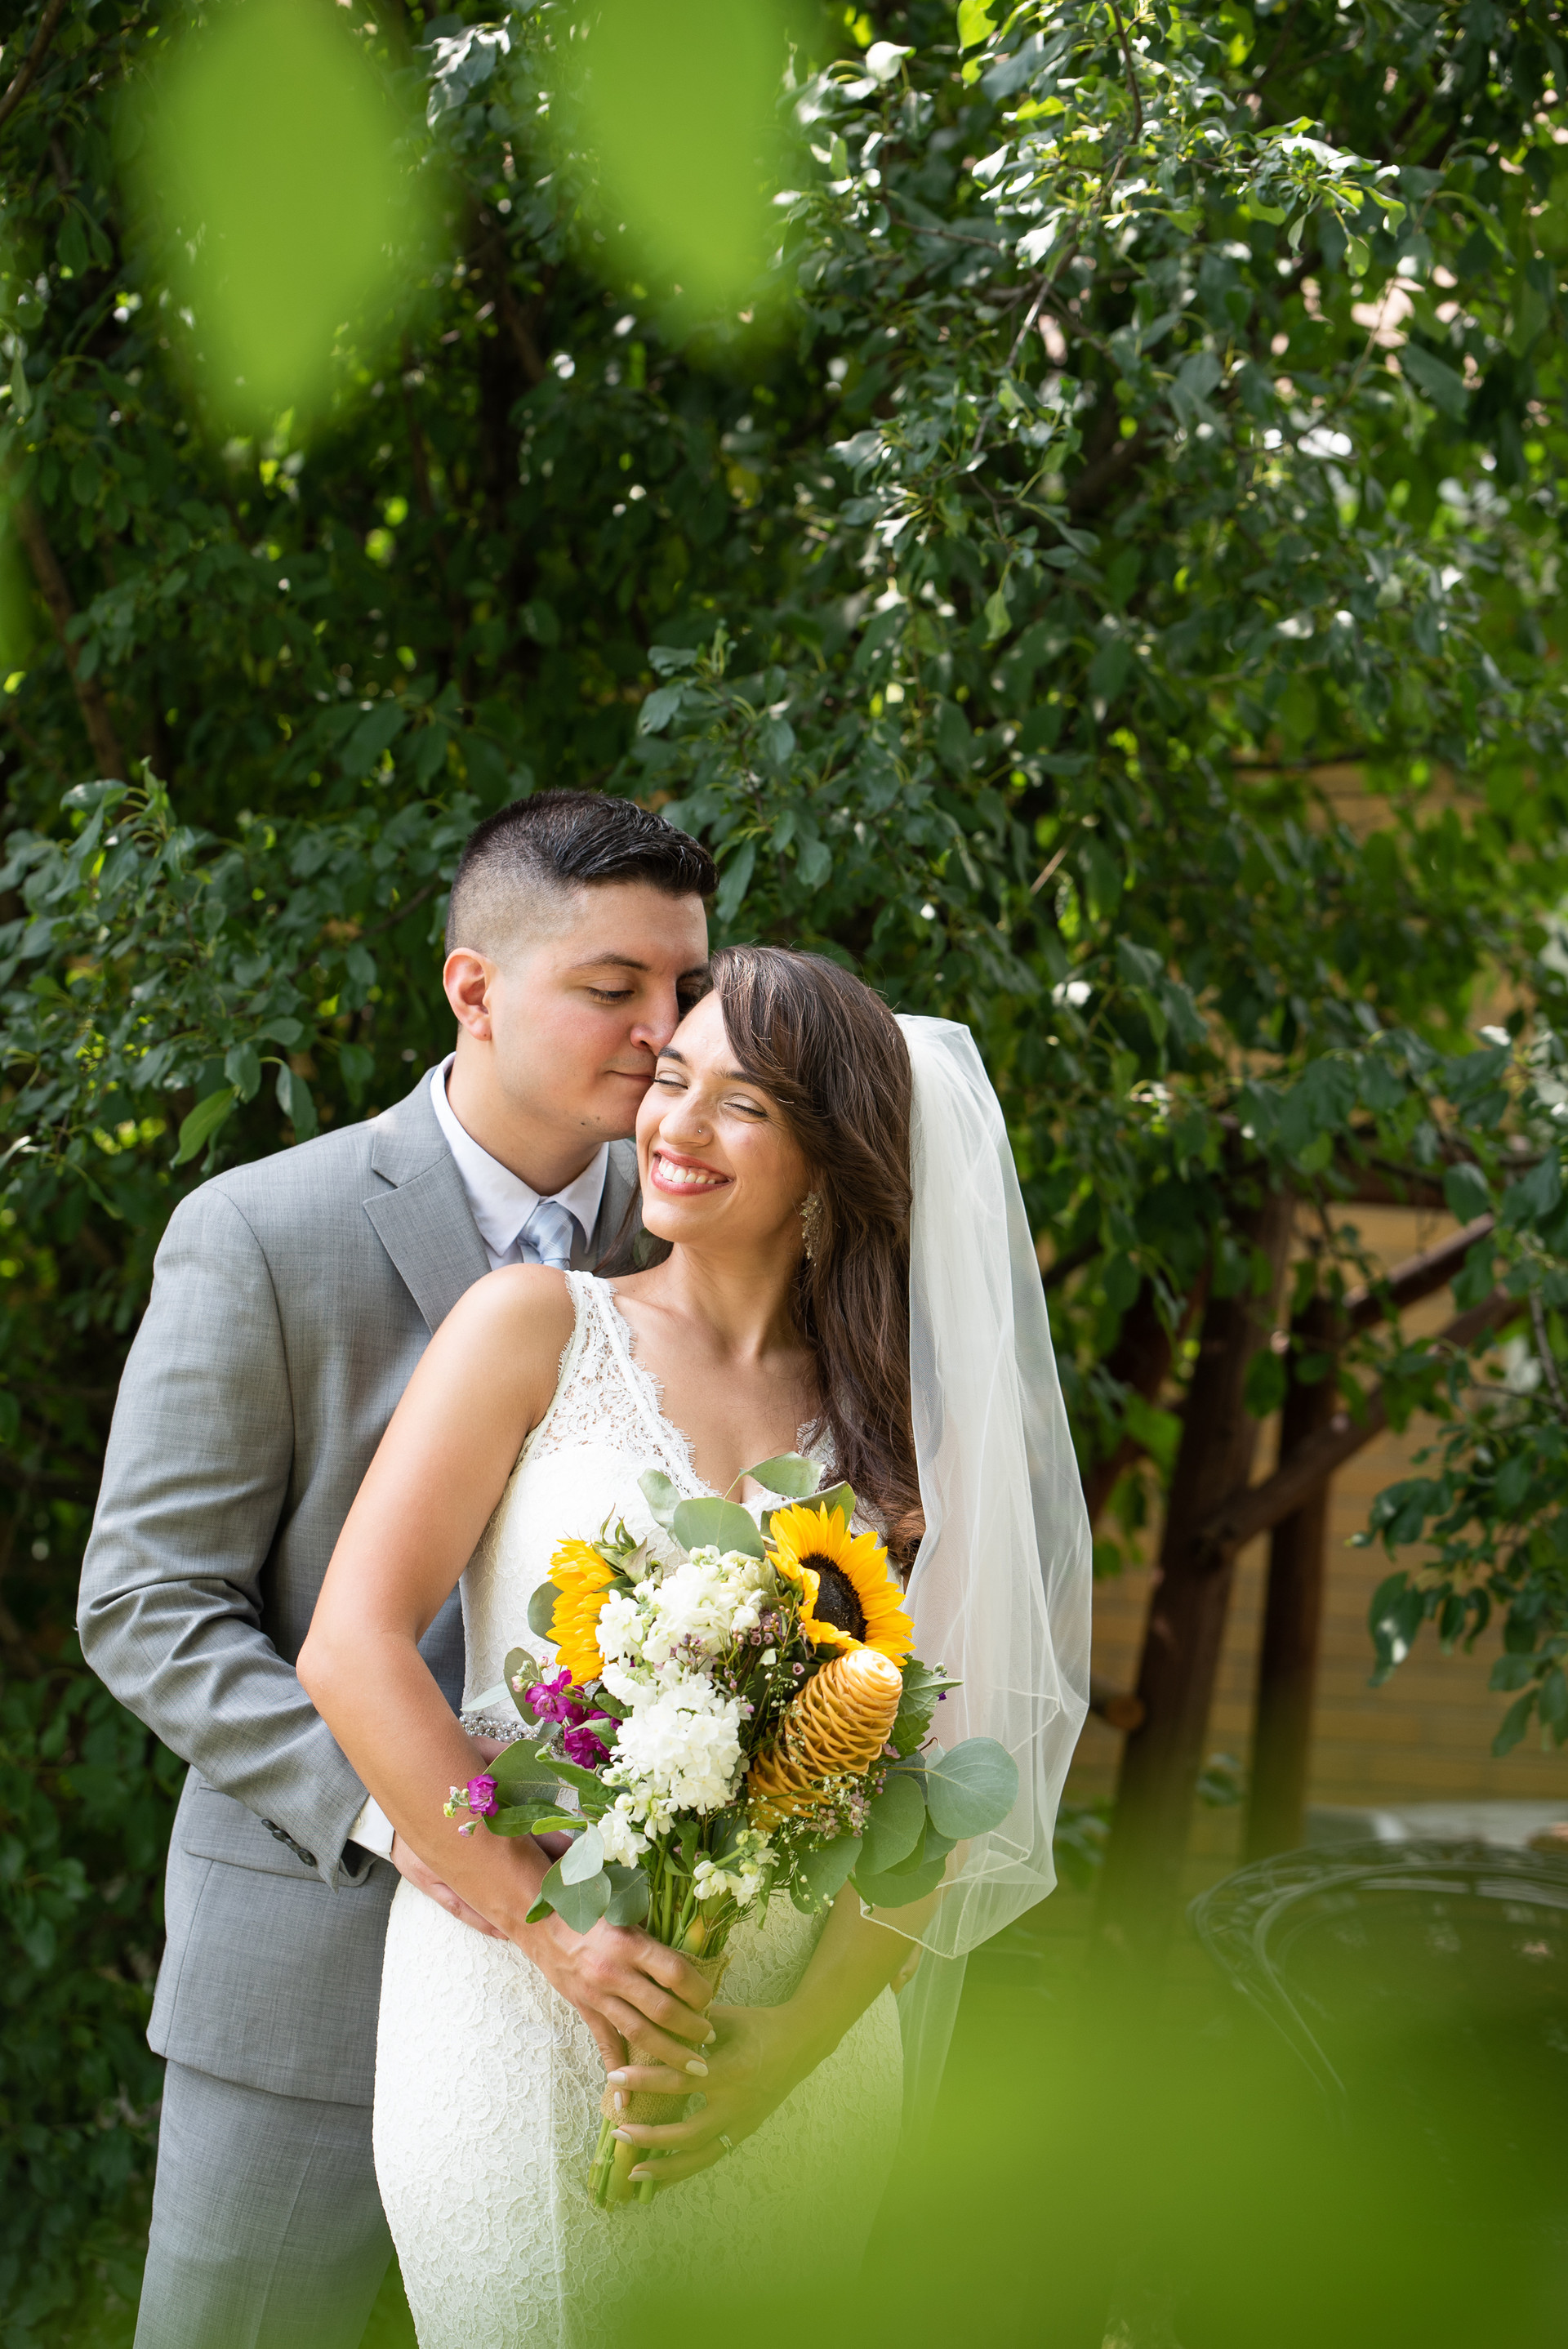 Park Ridge, IL Wedding Photographer